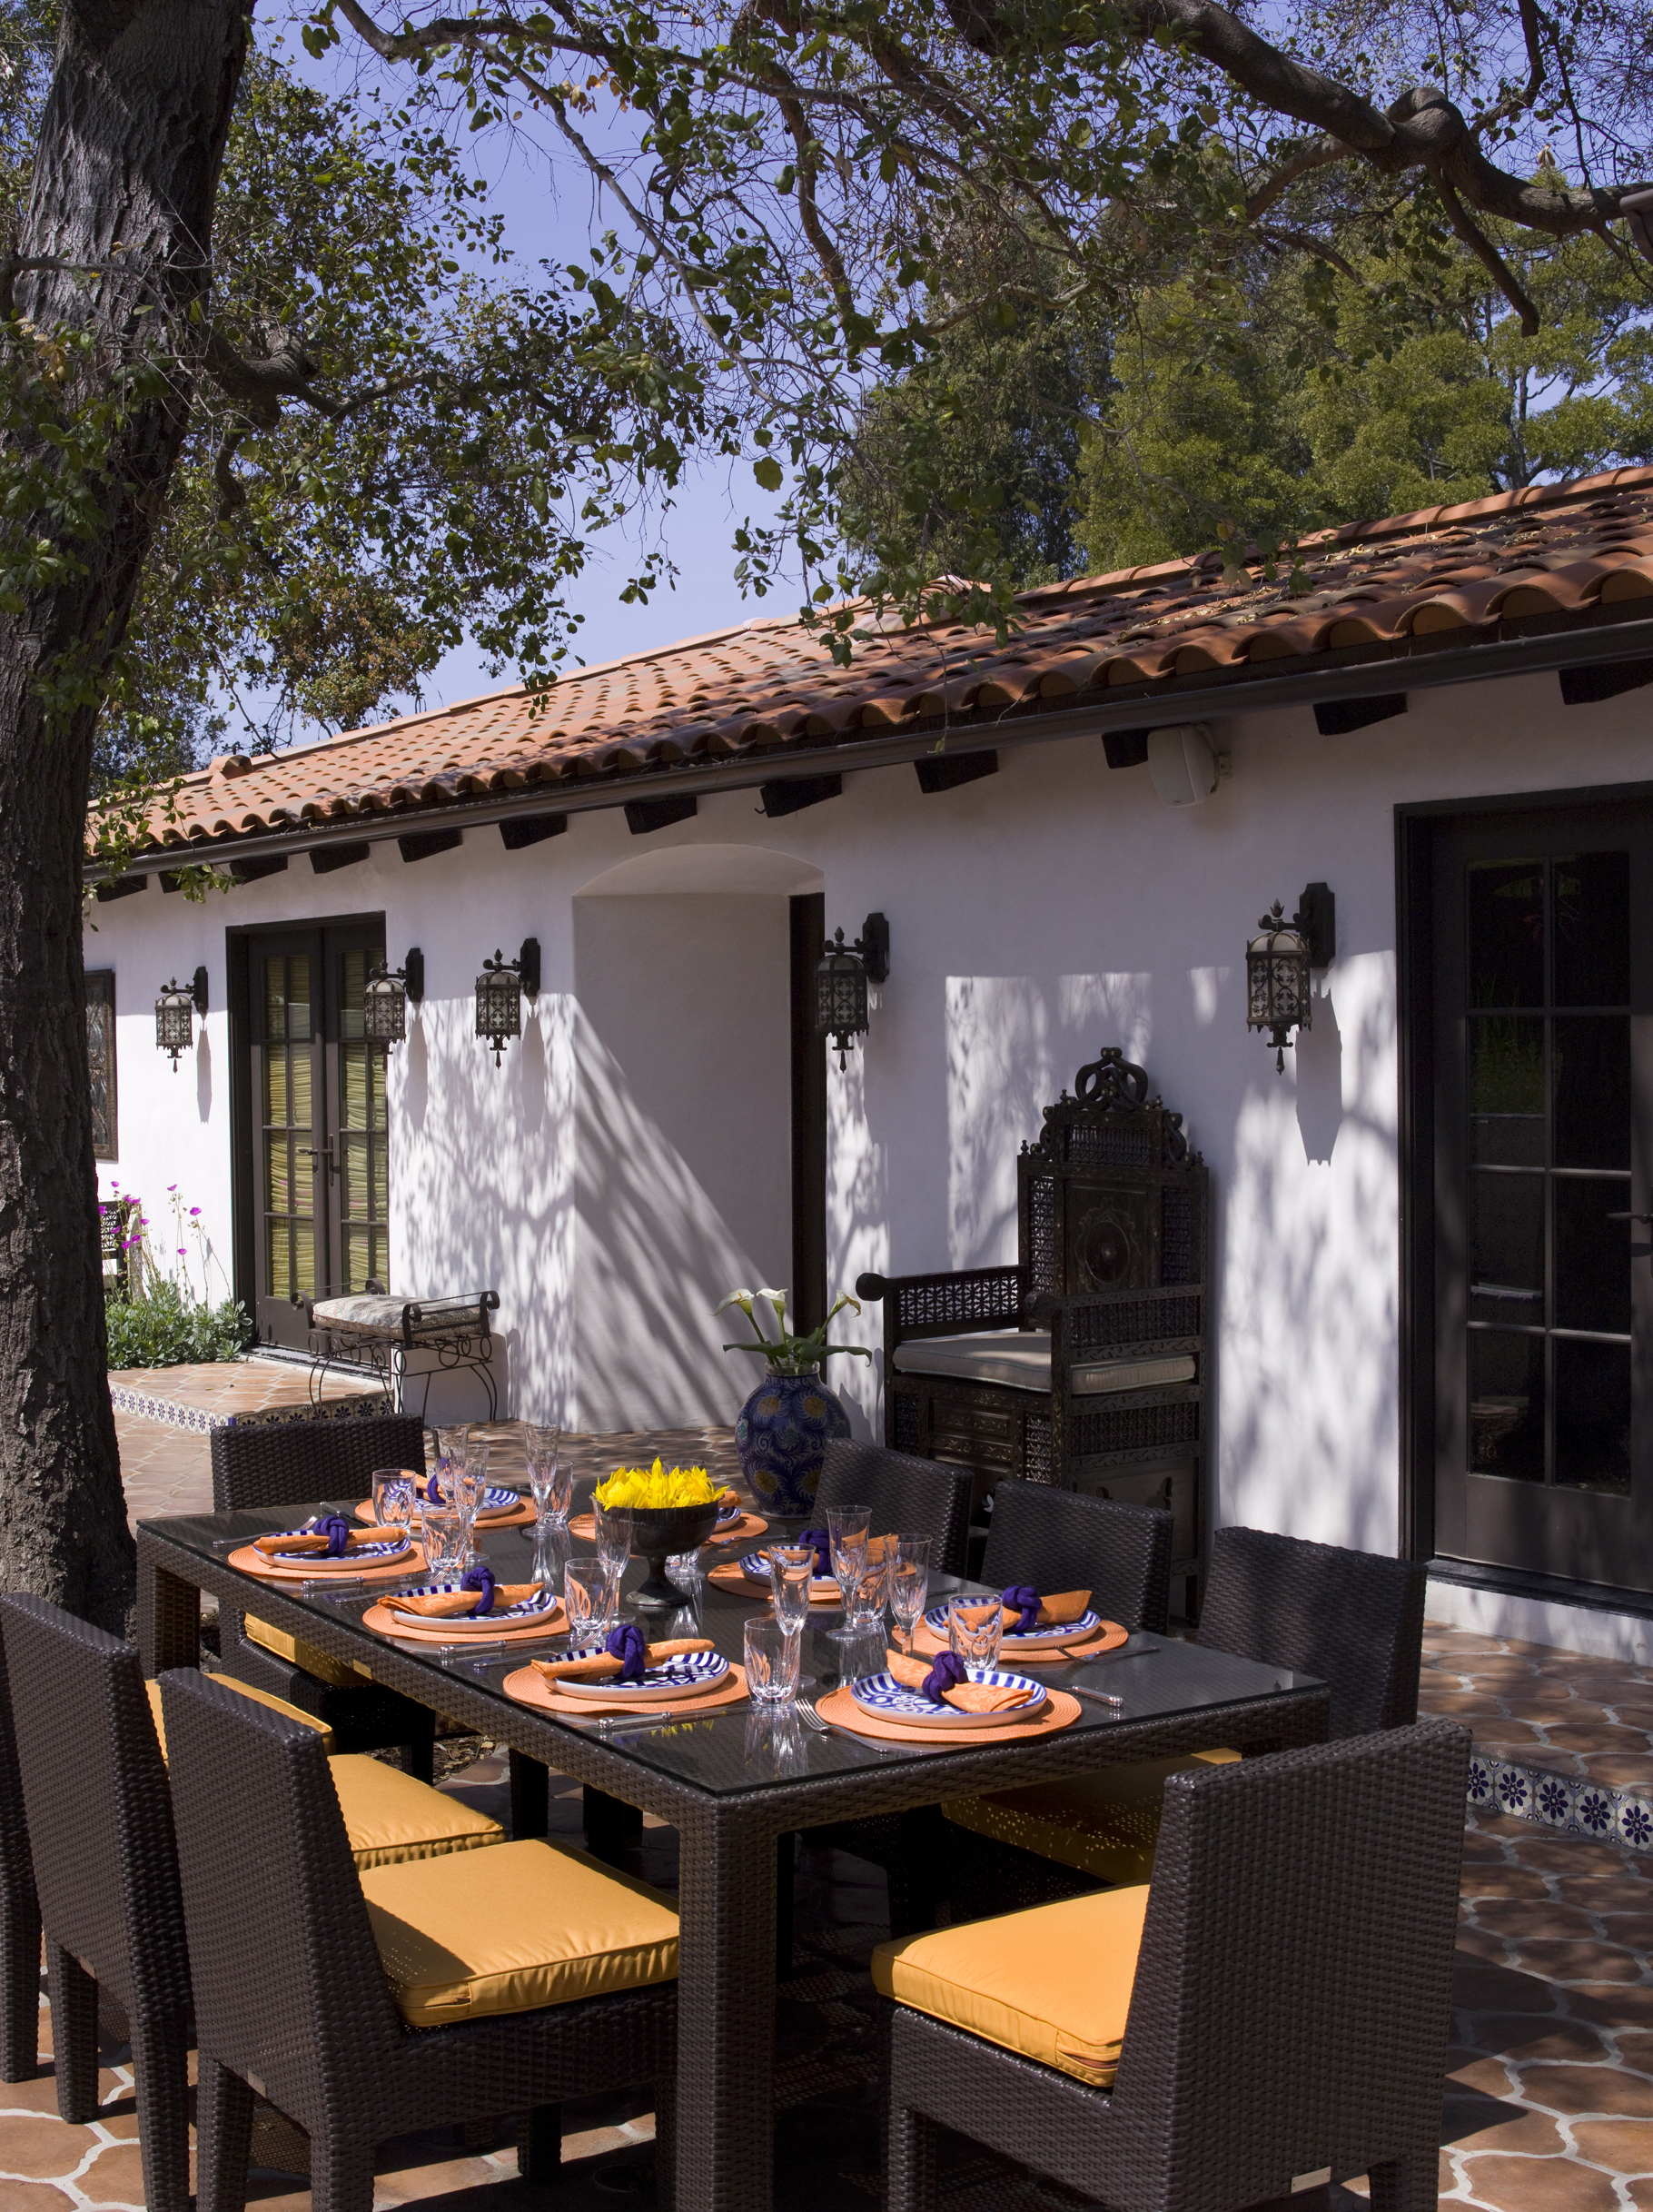 Dining Al Fresco at a Lori Dennis Spanish home